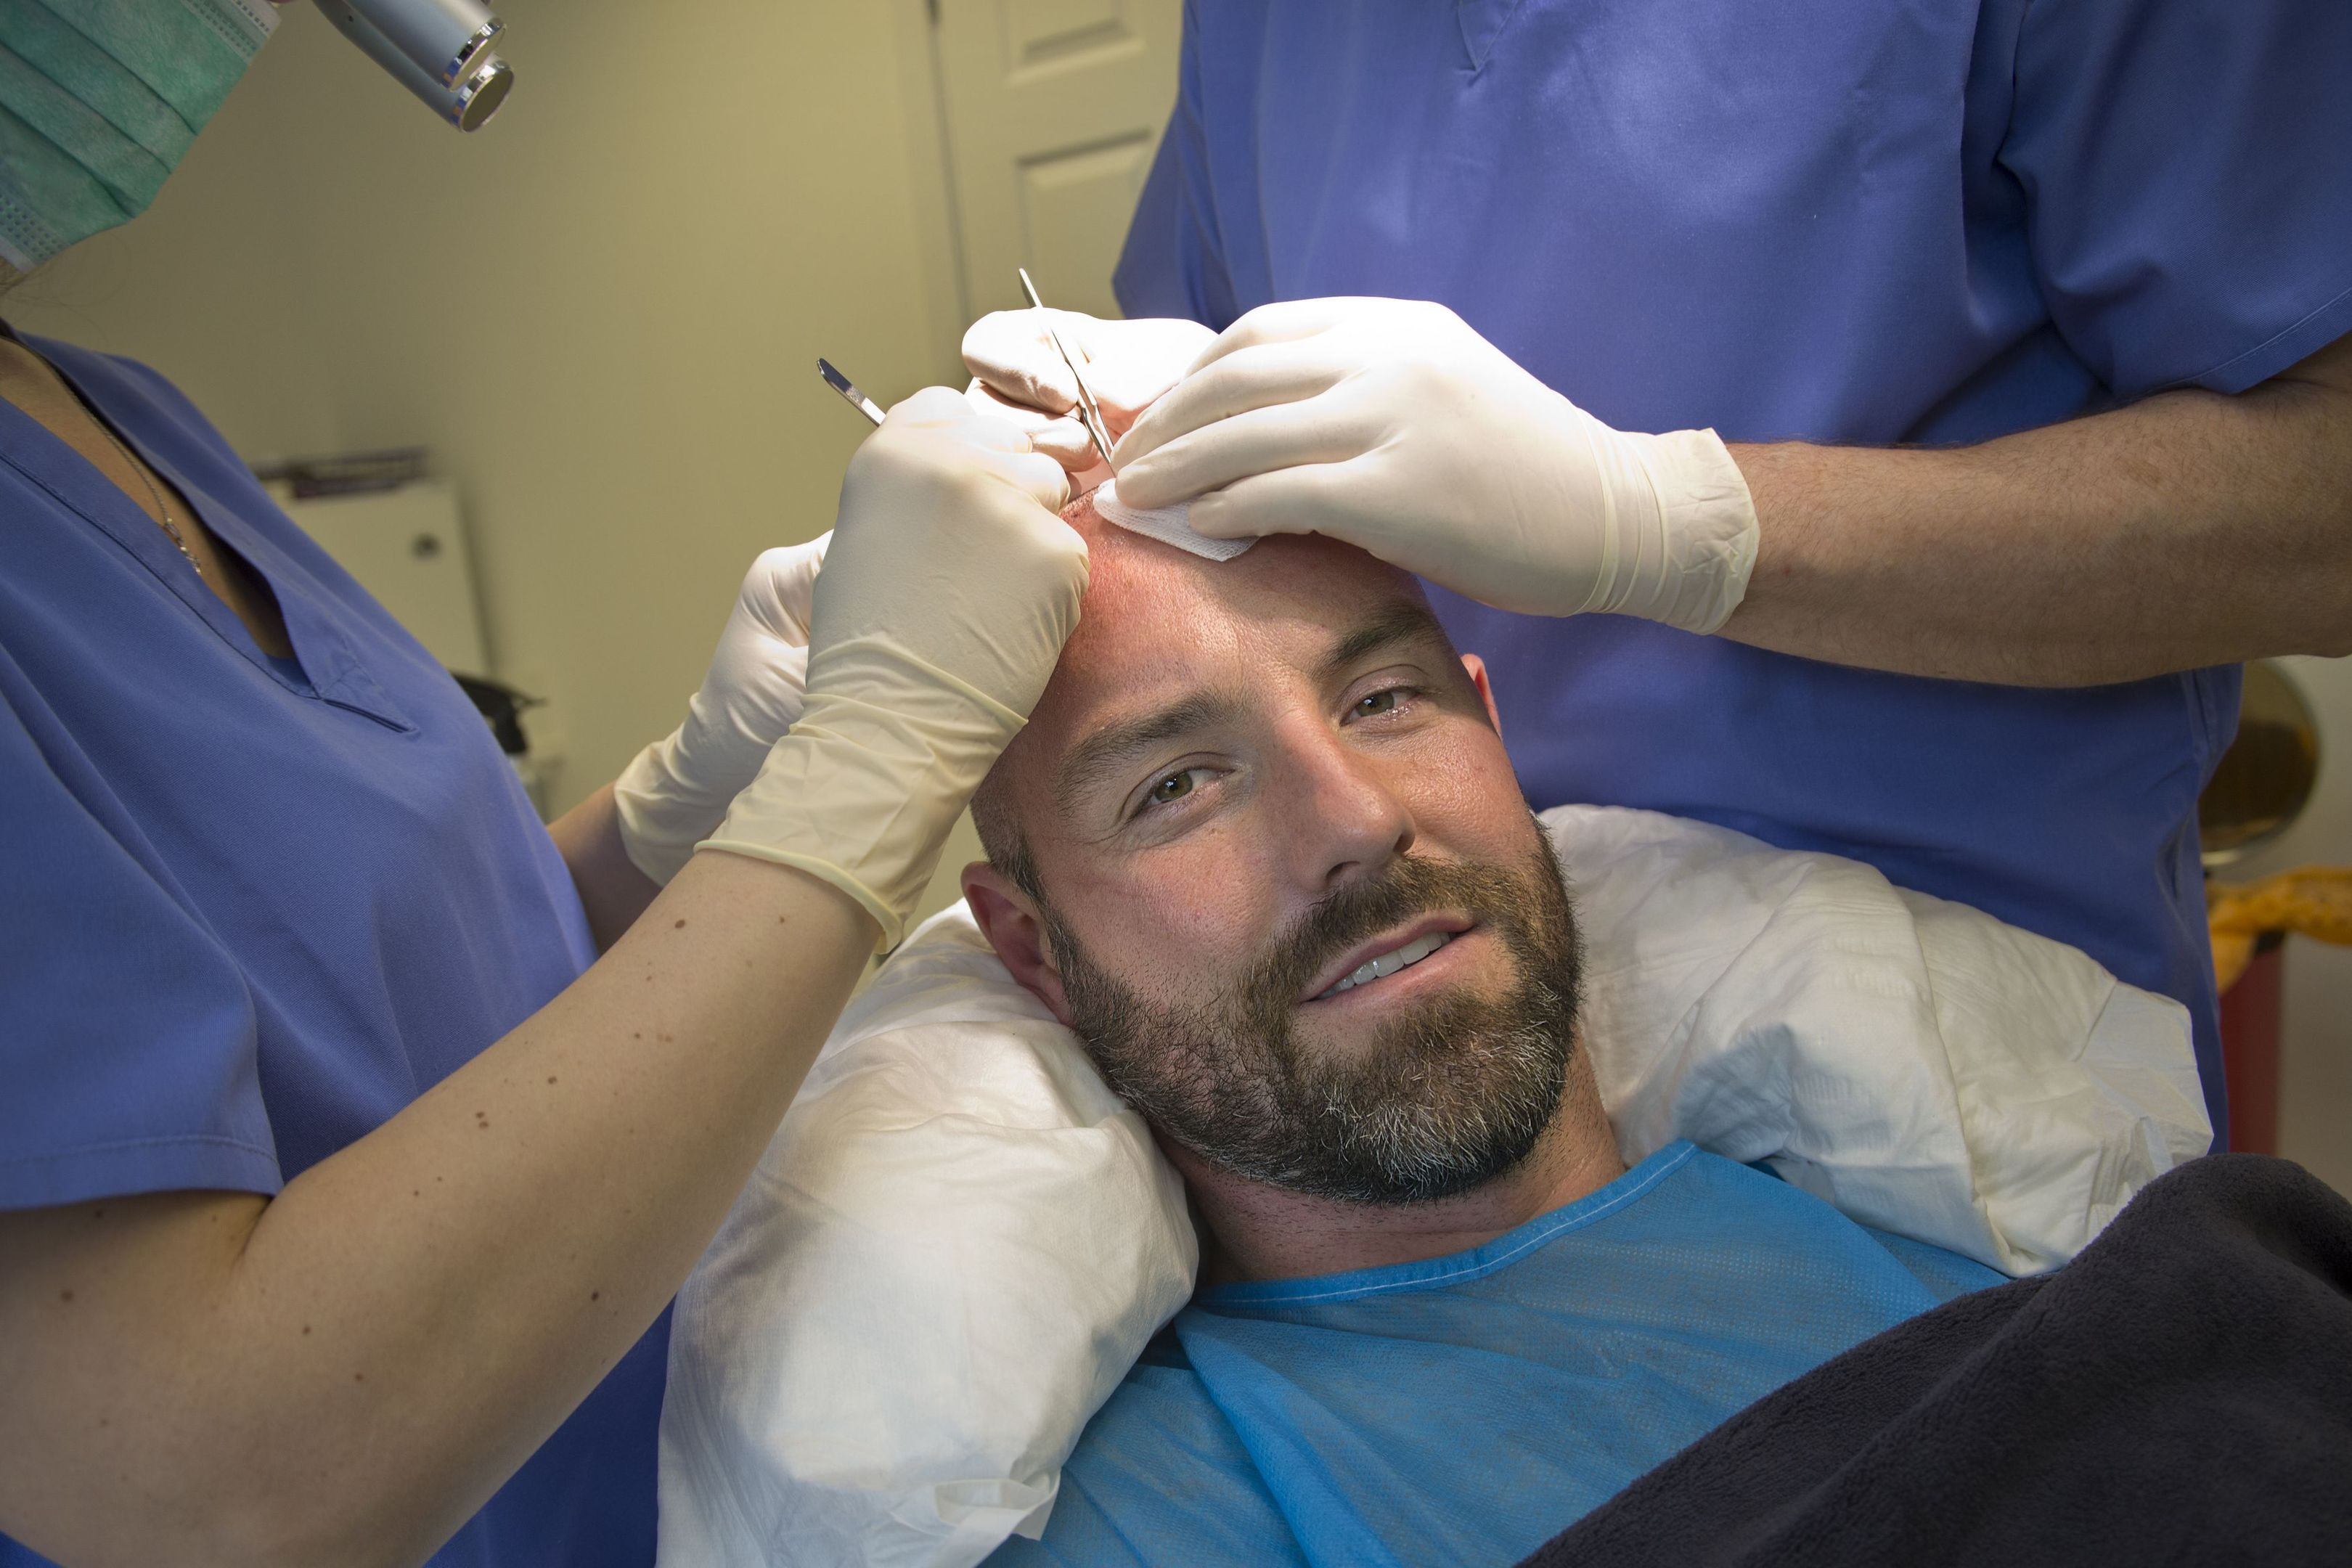 Premiership striker Kris Boyd, who has become the latest in a line of footballers including Wayne Rooney and James McFadden to have a hair transplant.